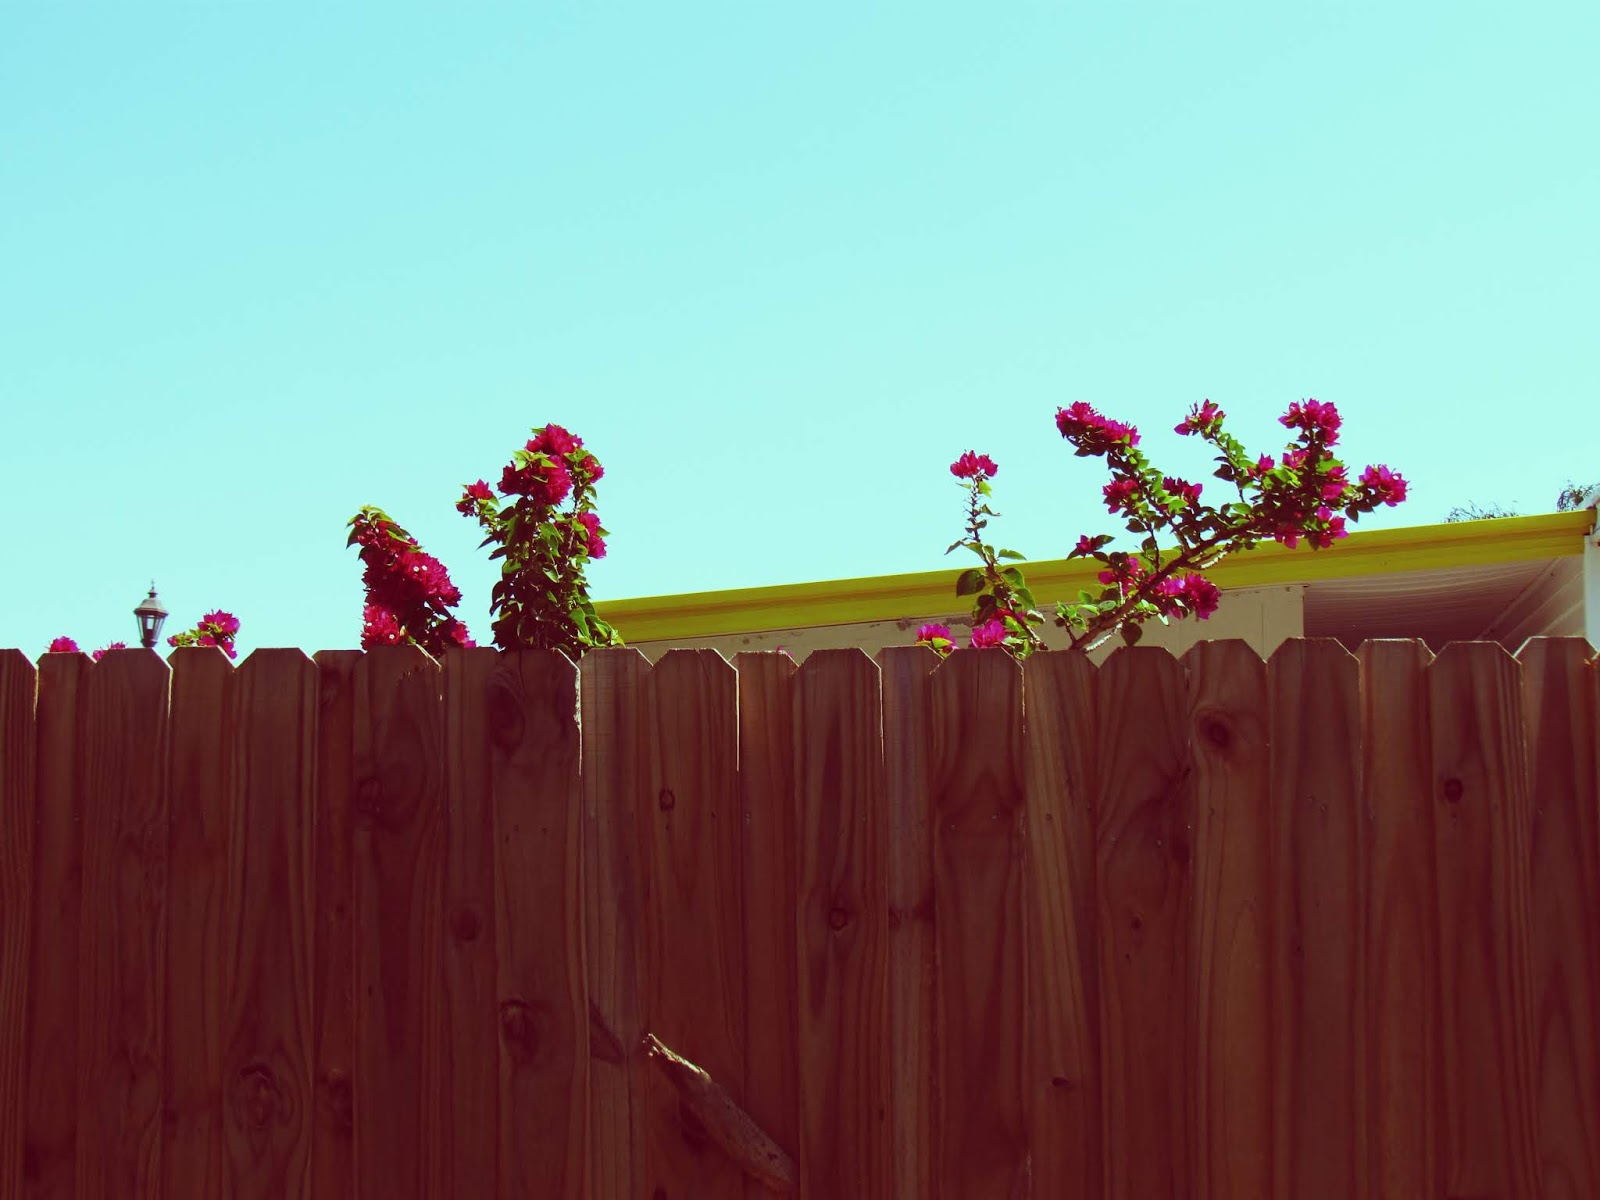 Wooden Fence in Residential Neighborhood of Florida With Pink Flowers and a Hot Tin Roof With Sunshine Yellow Paint